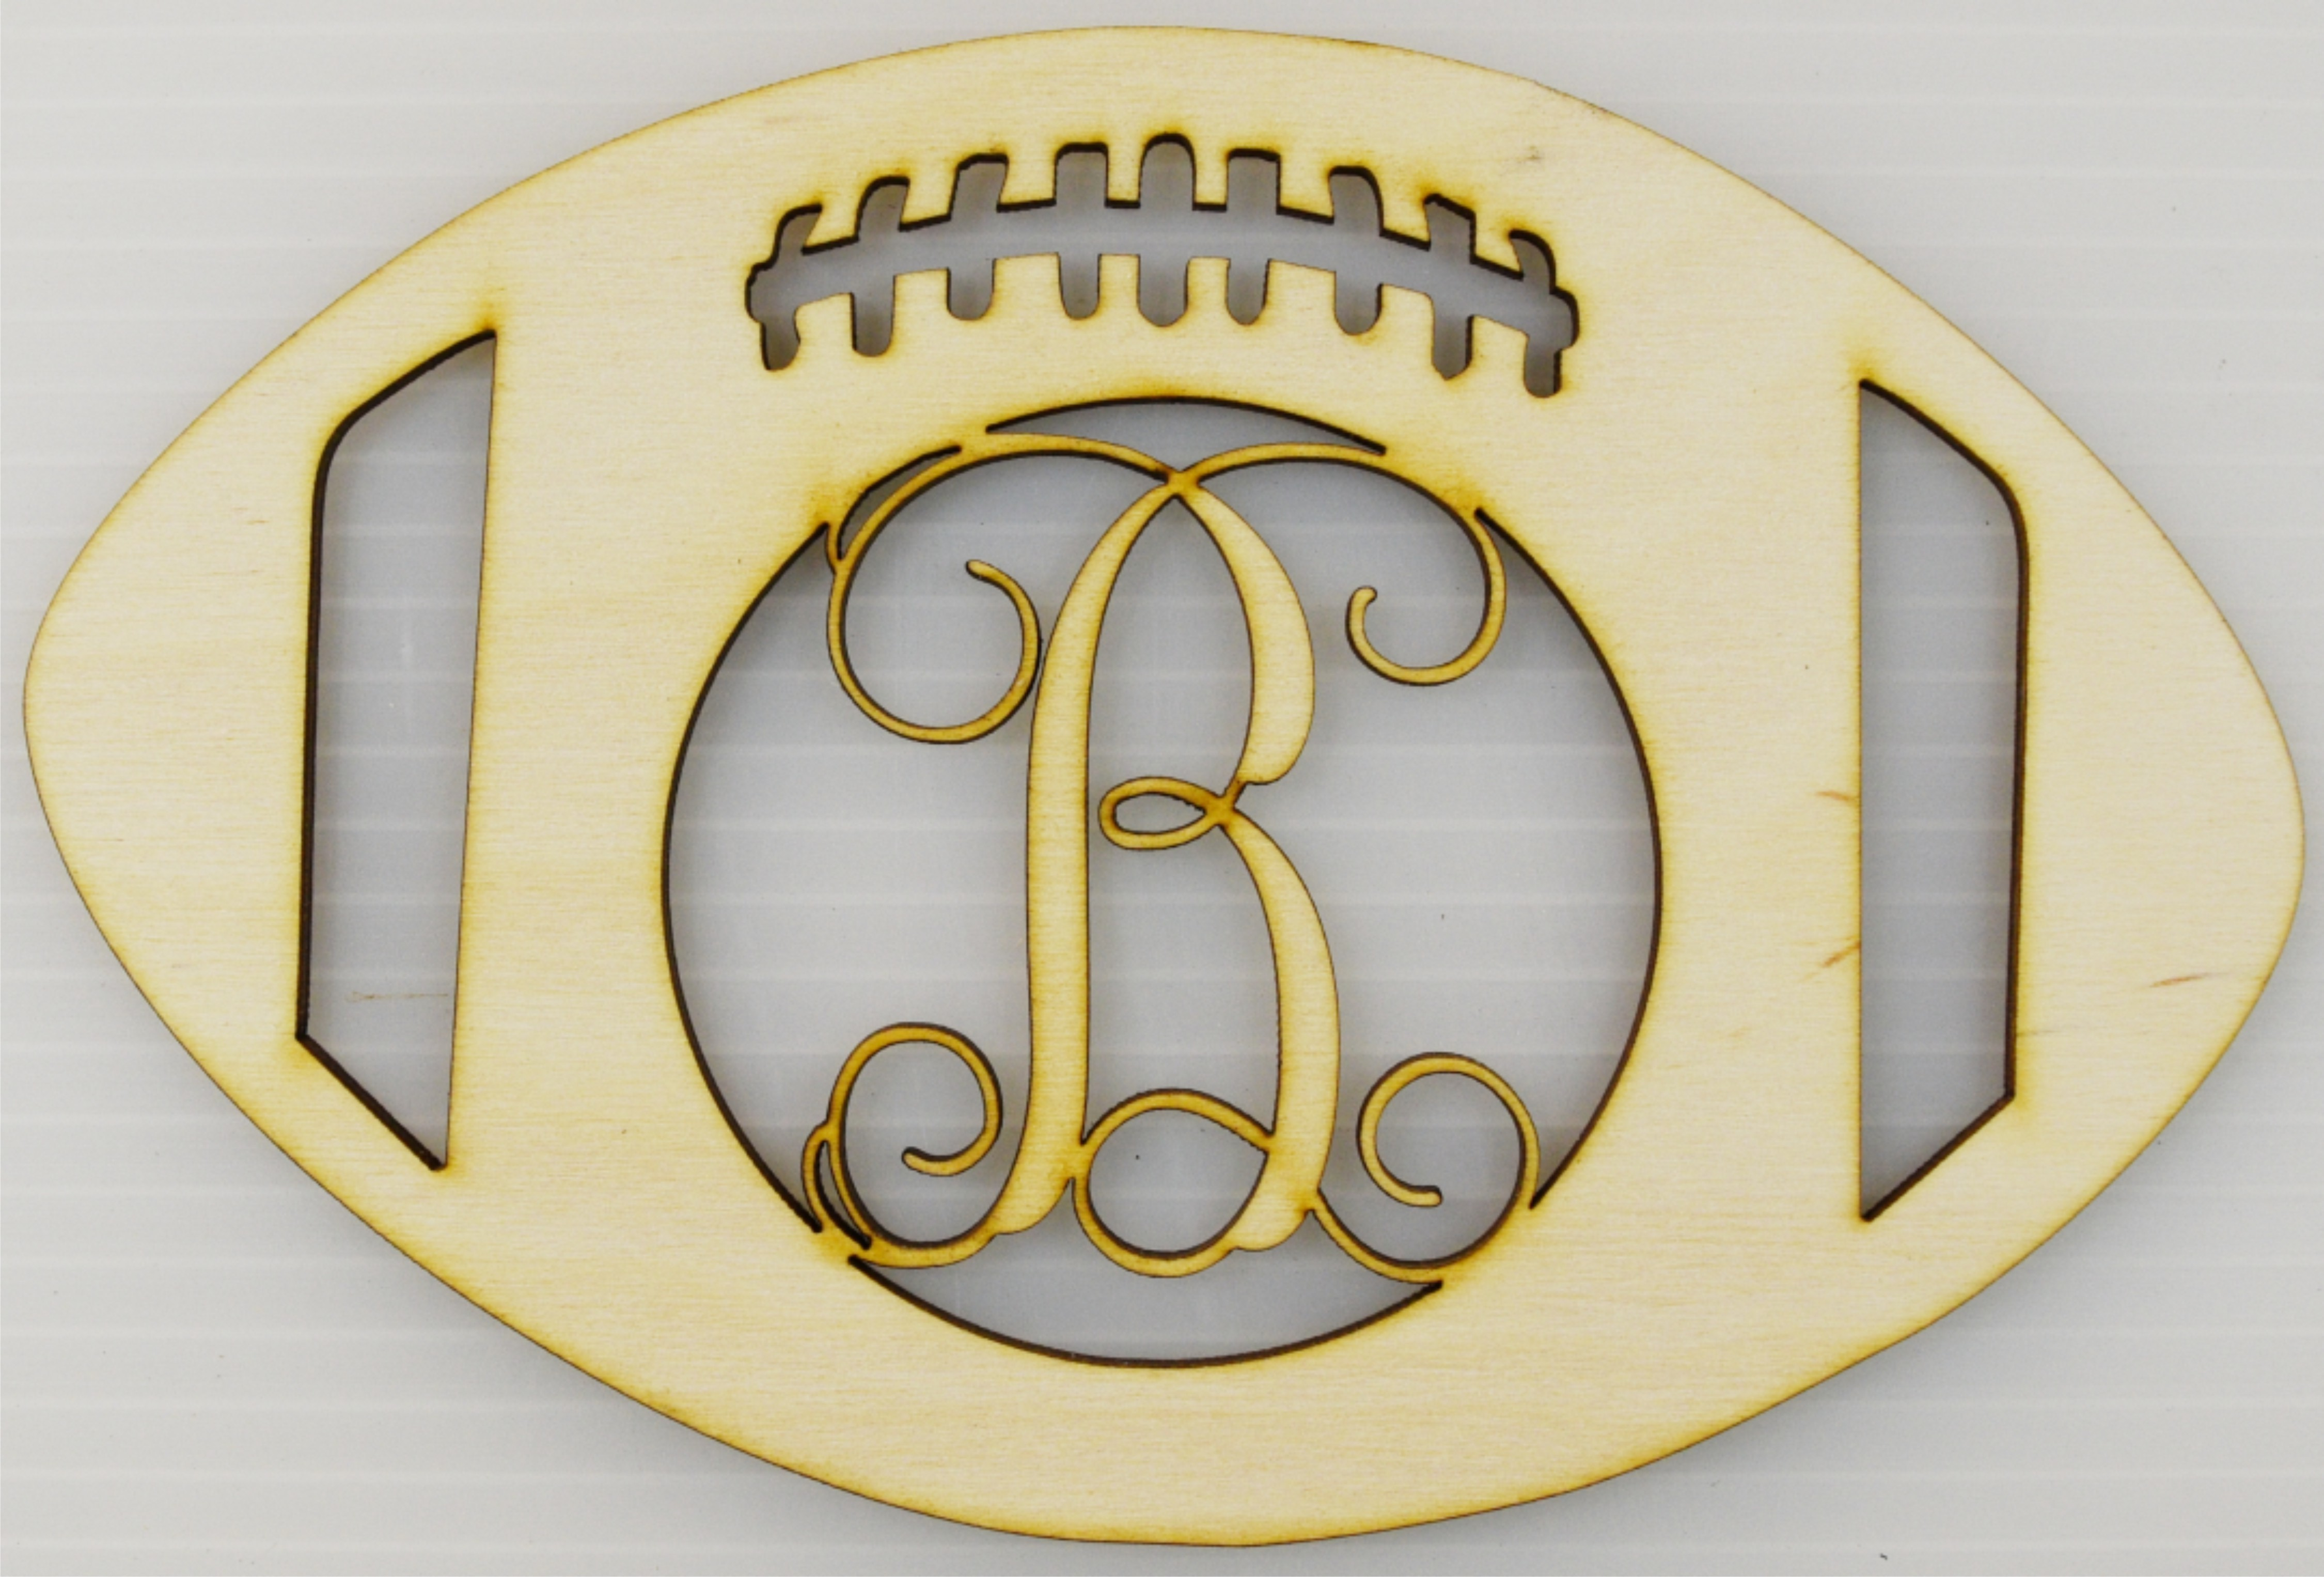 Monogrammed Football / Sports Themed Wood Cut Out / Laser Cut Wood /